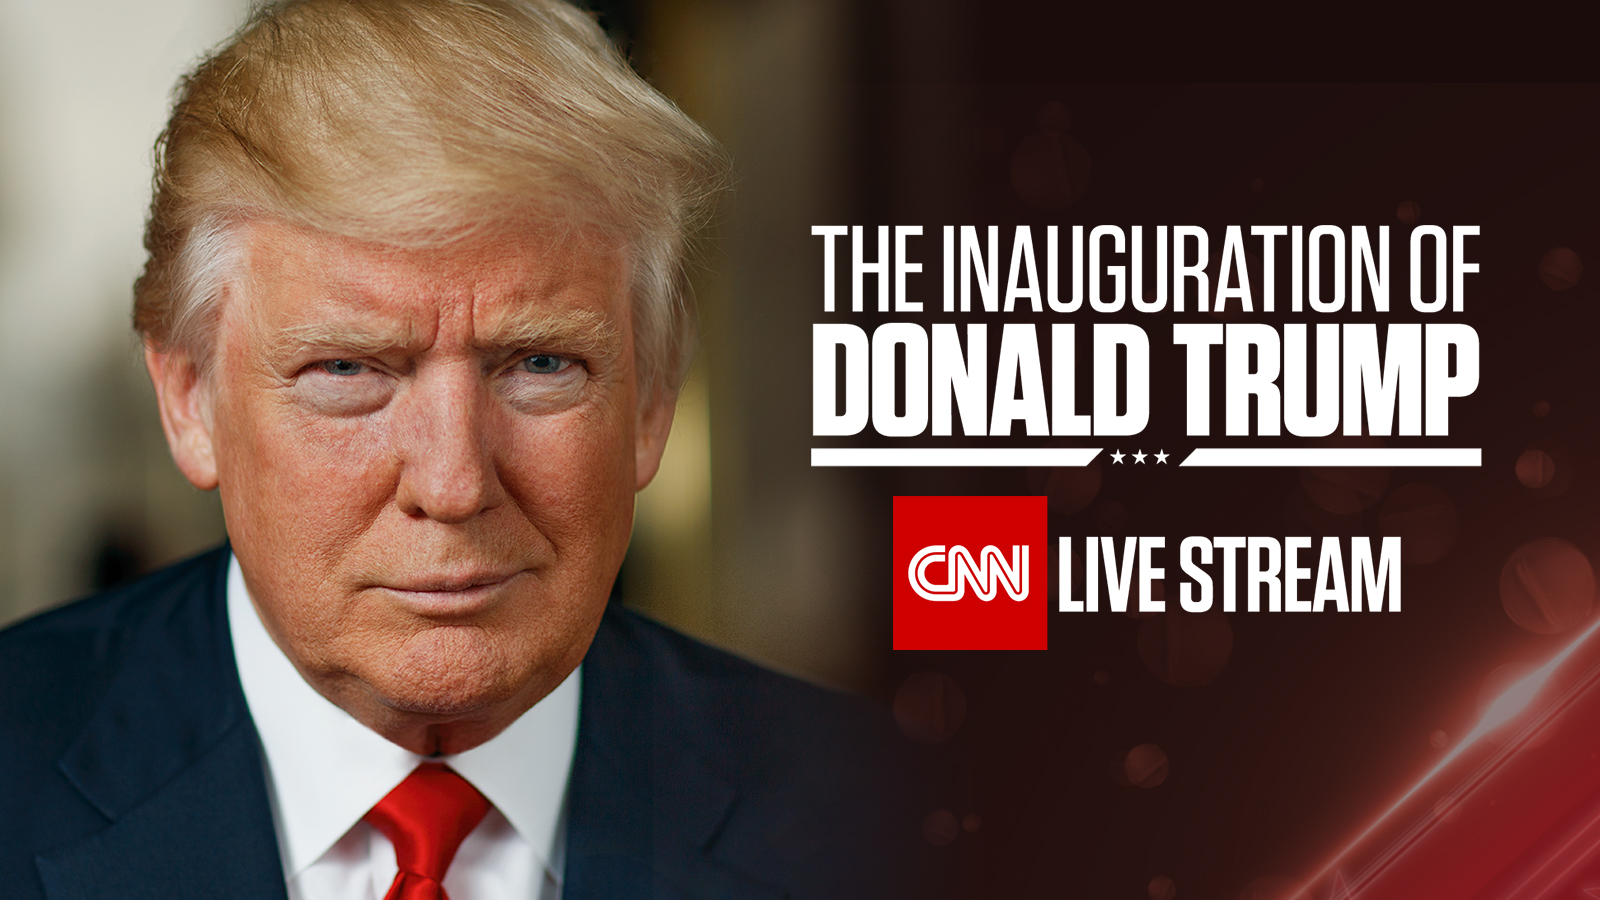 CNN TO LIVE STREAM INAUGURATION DAY COVERAGE